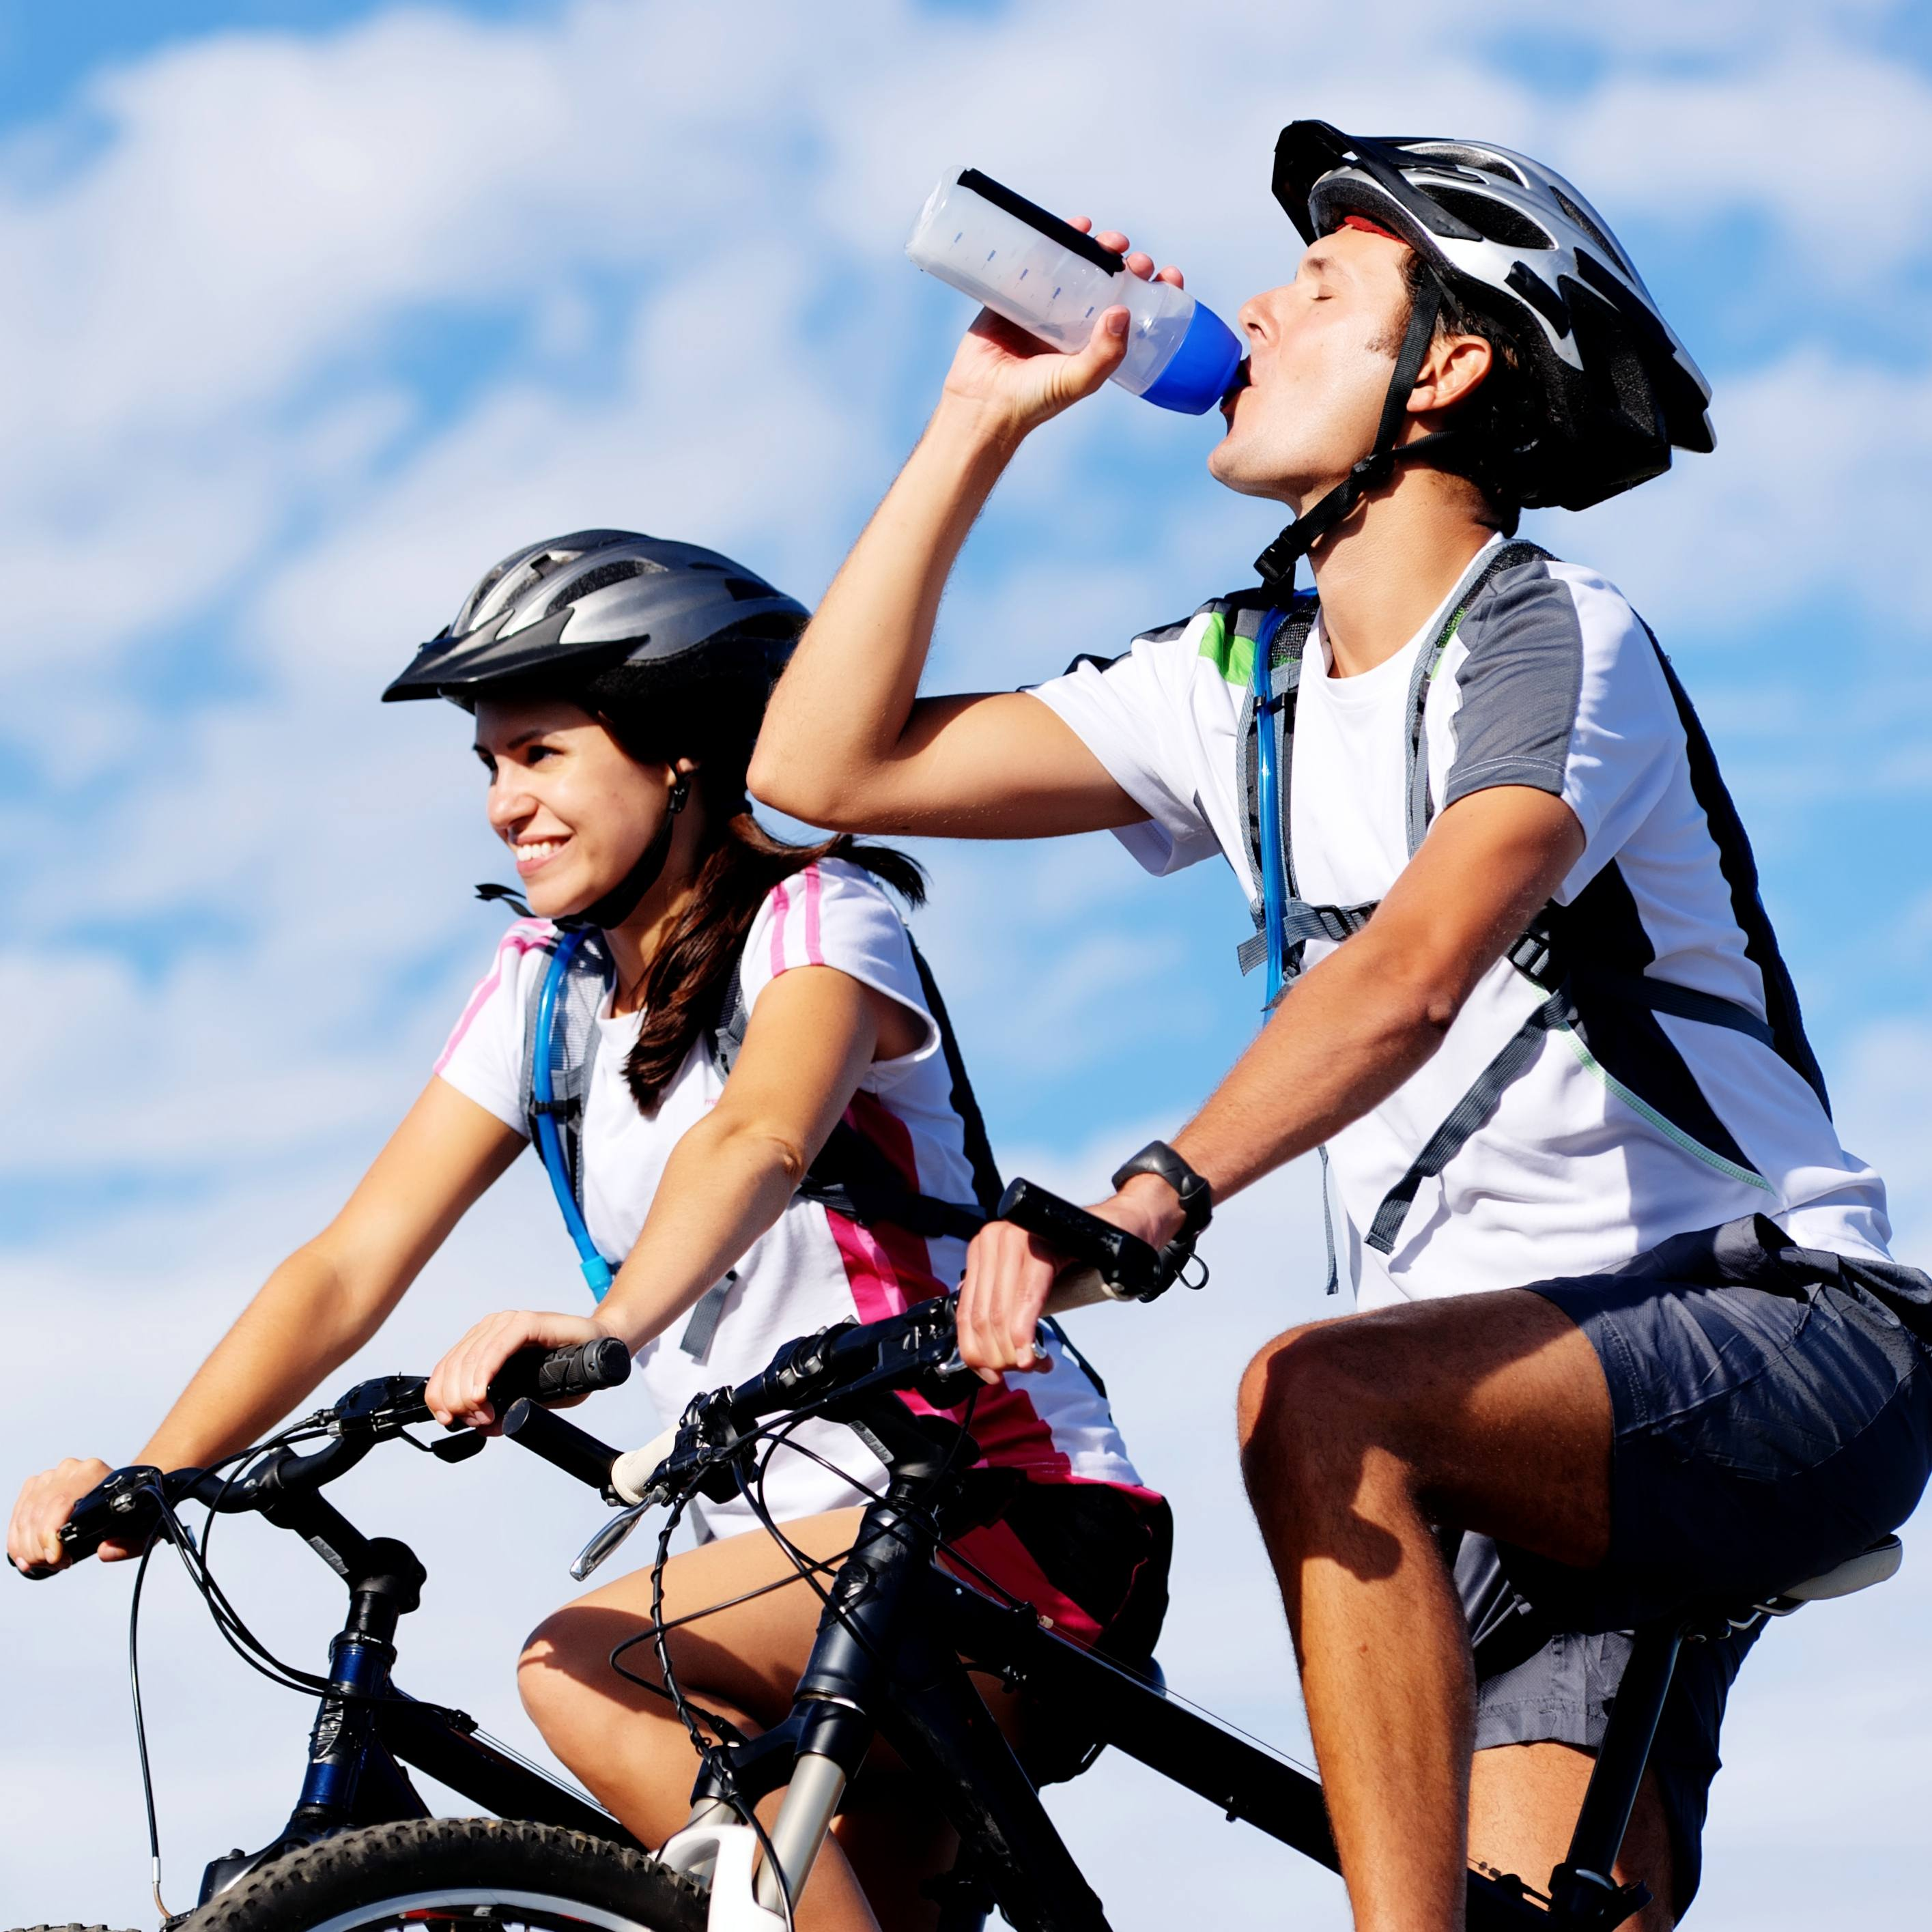 a man and a woman on their bicycles, wearing helmets and enjoying the outdoors with blue sky in the background and the man is thirsty, drinking water to stay hydrated